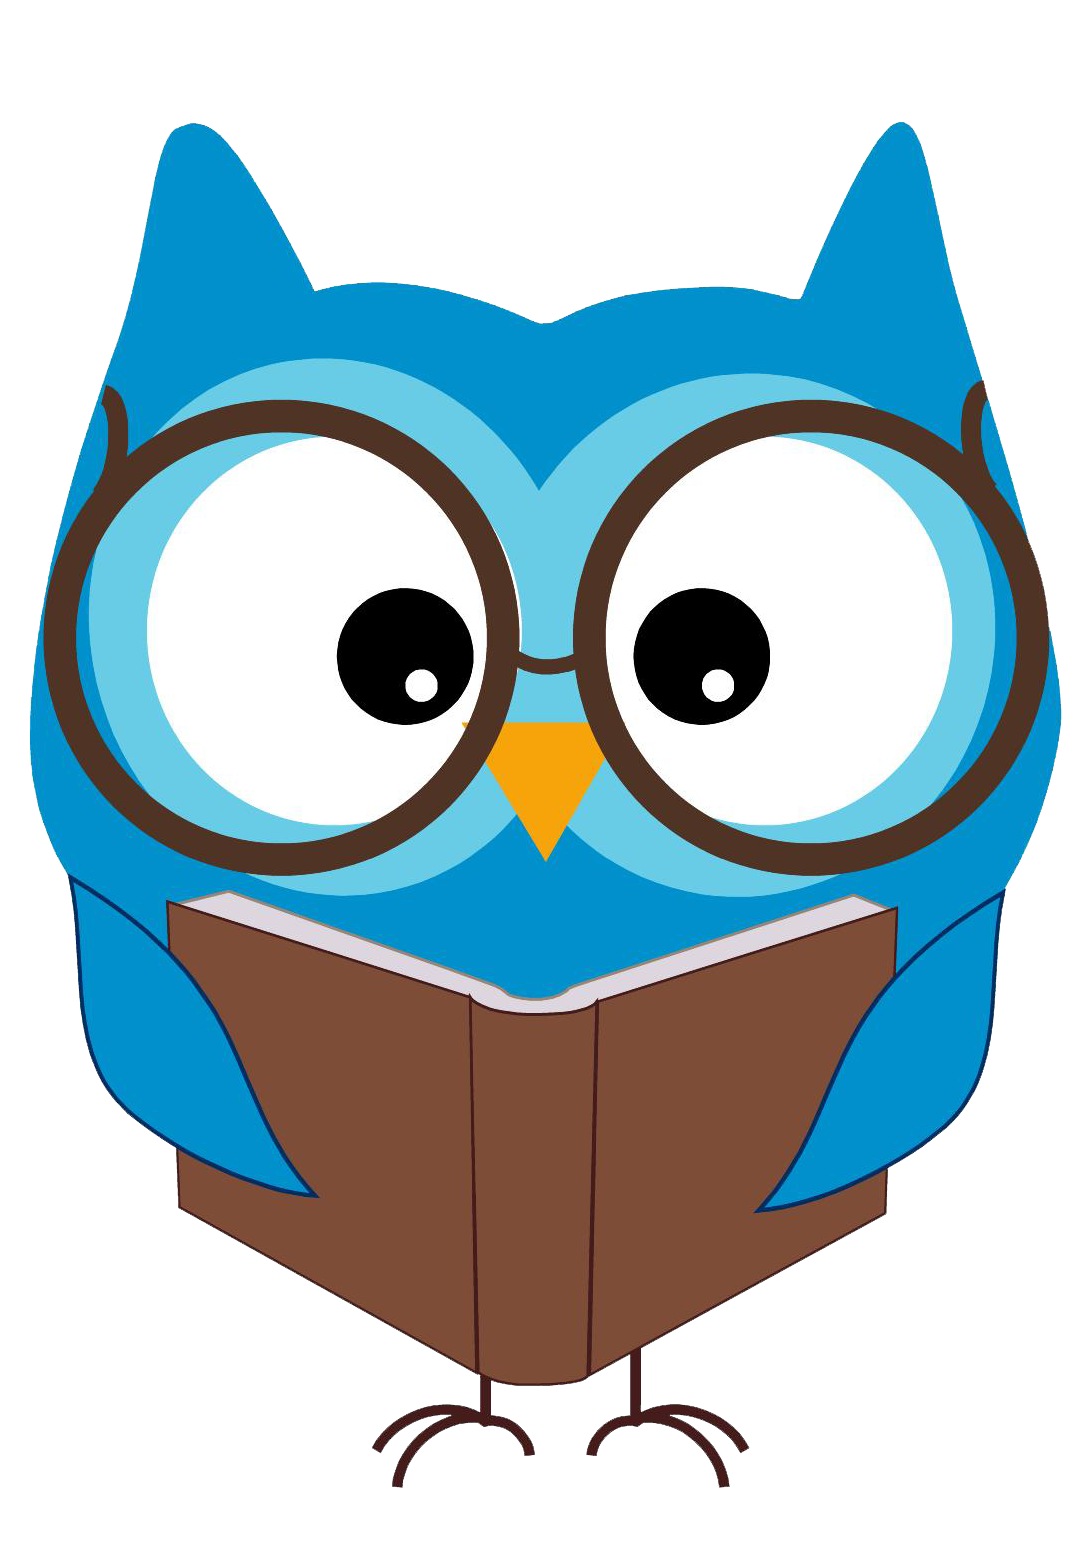 Owl with books clipart graphic library download Owl with books clipart - ClipartFest graphic library download